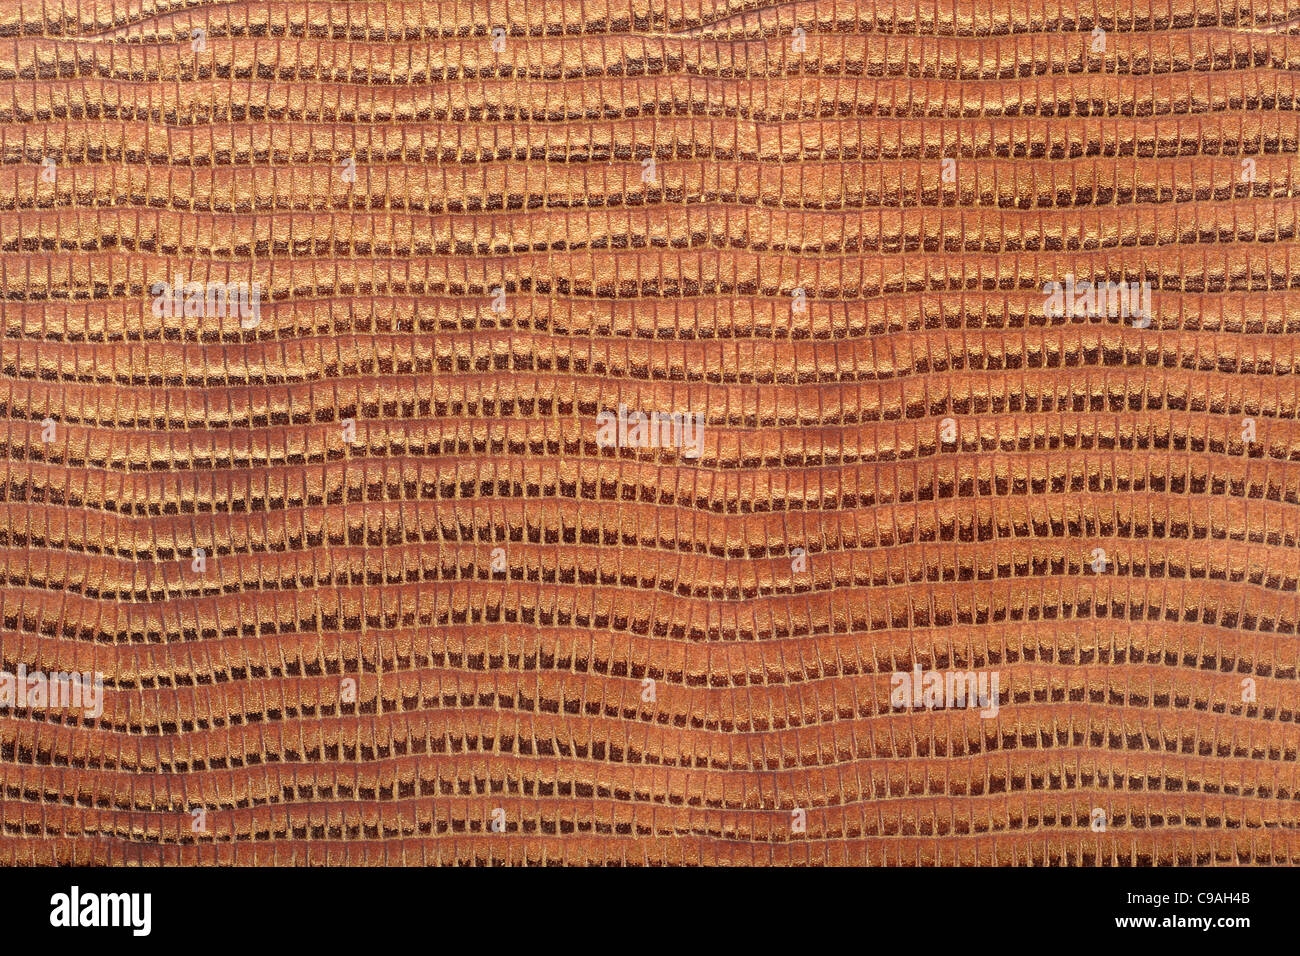 Reptile leather texture background - Stock Image